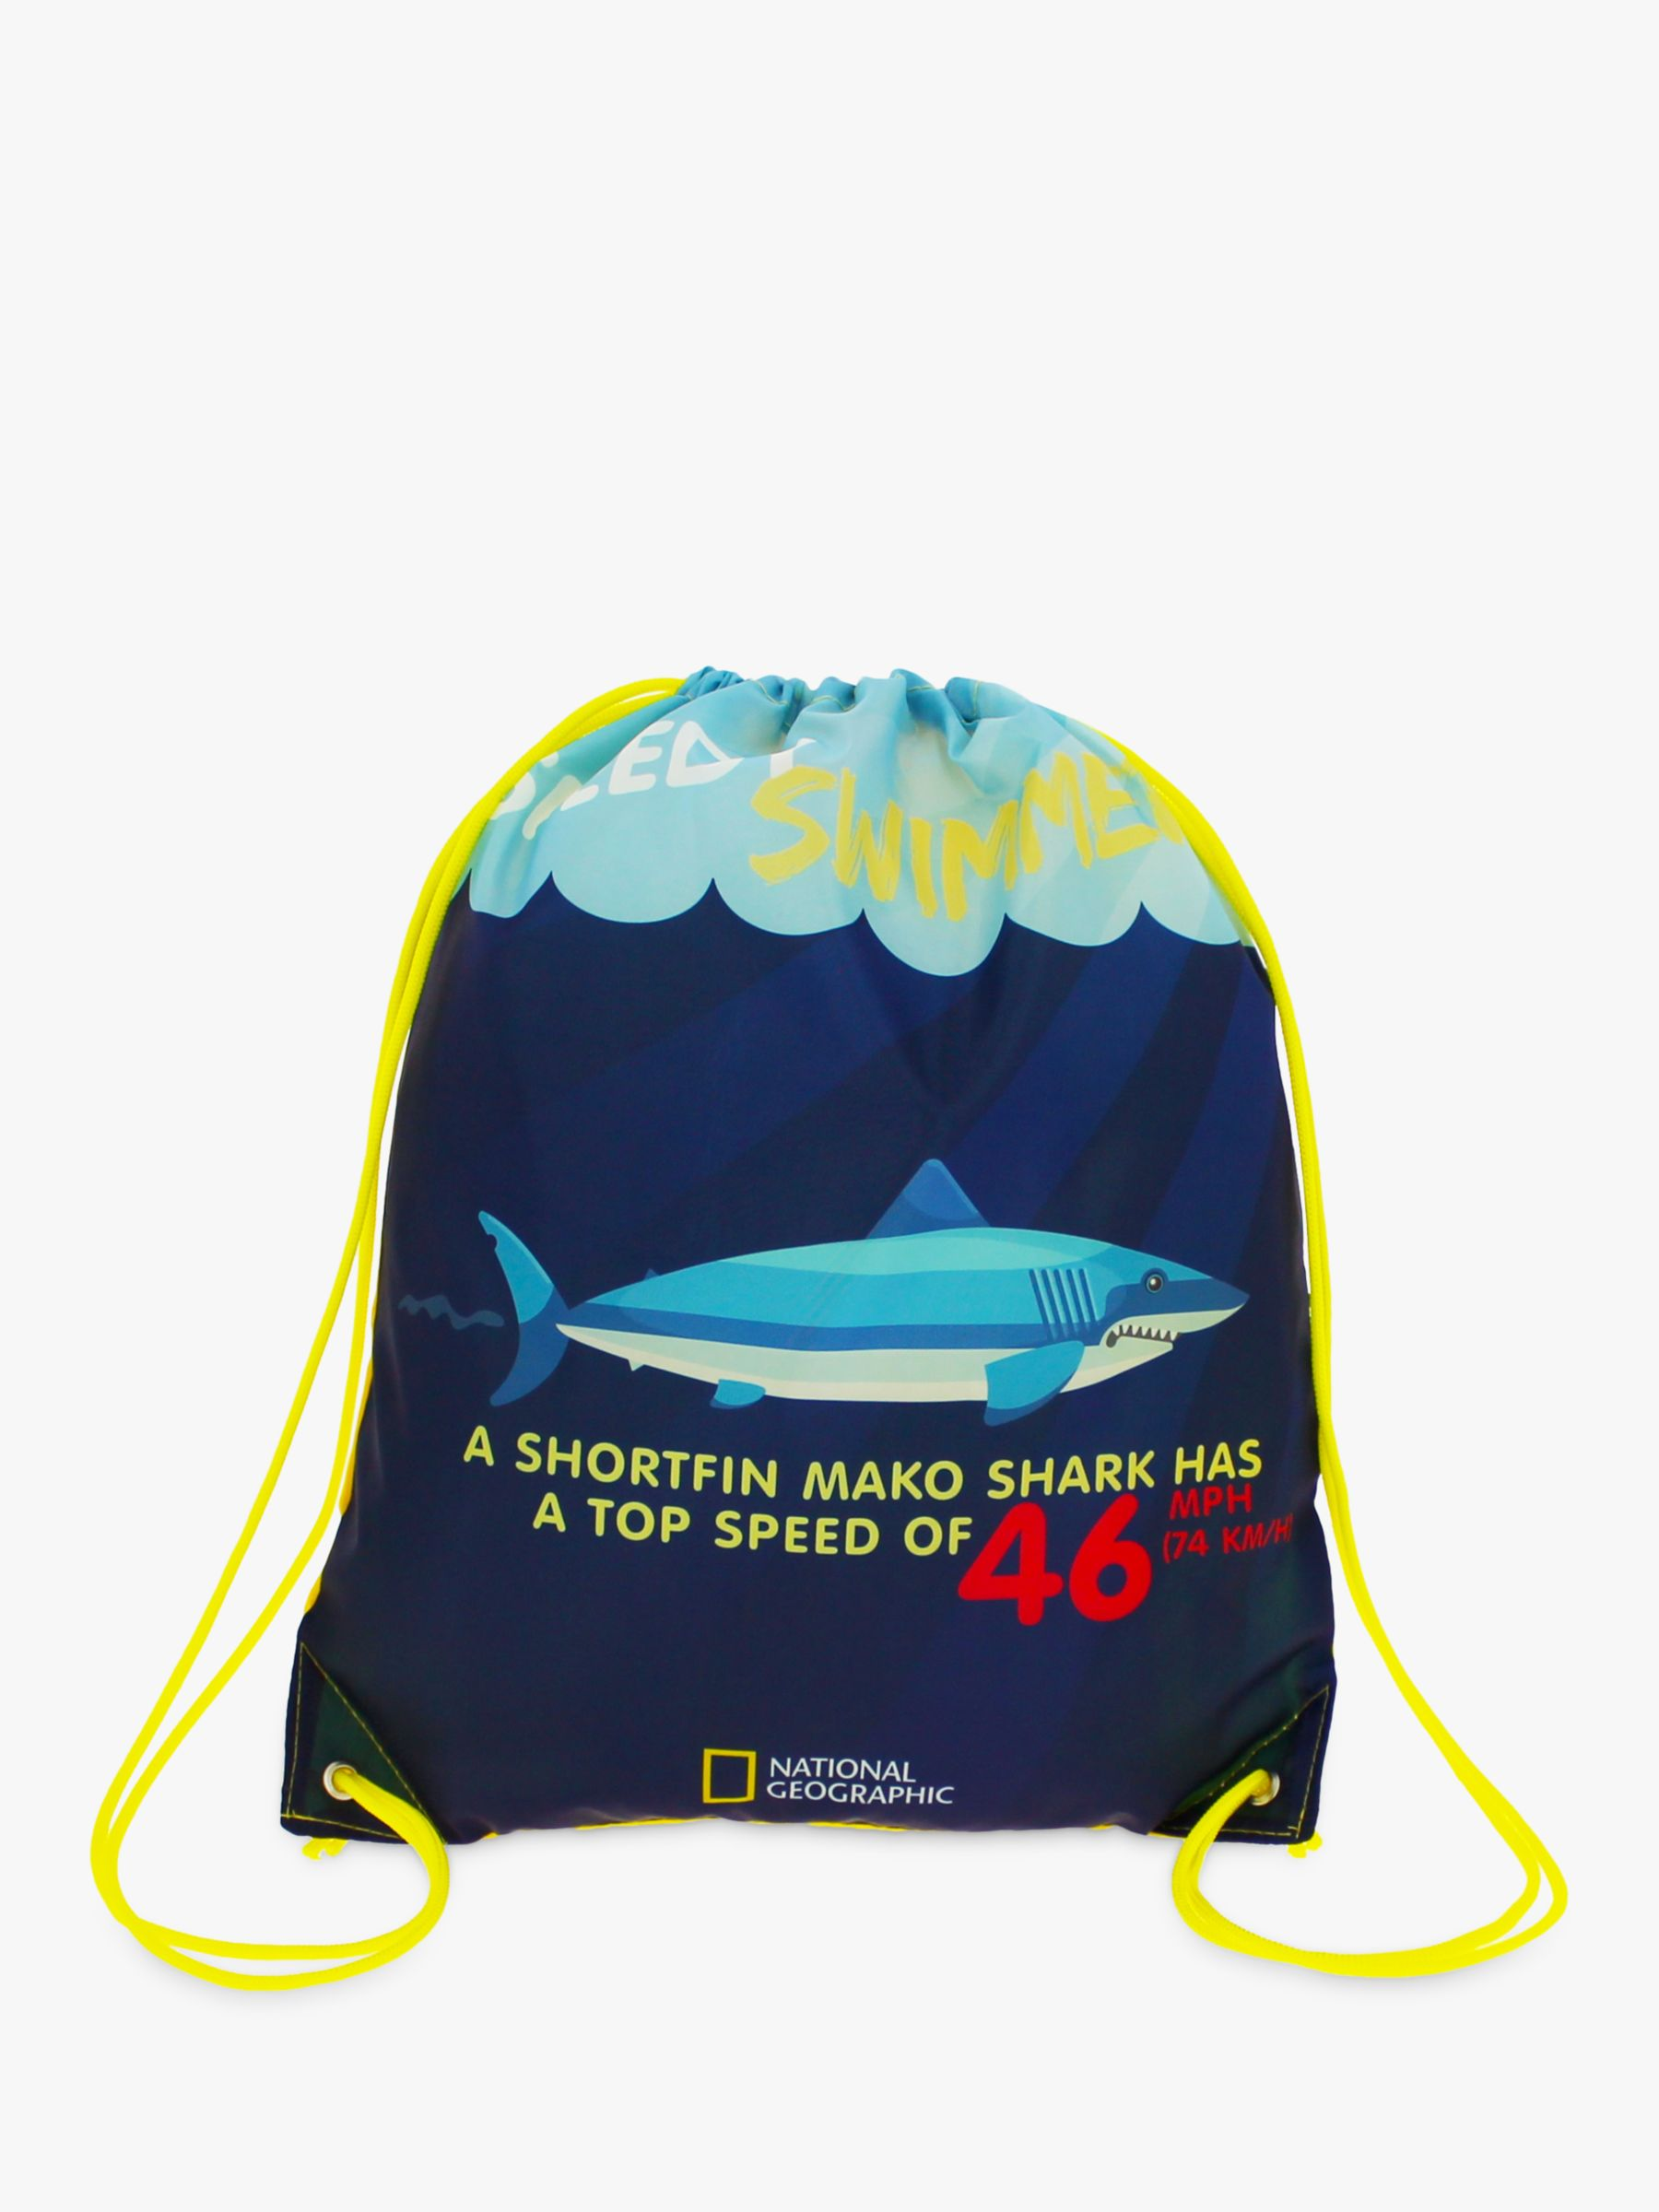 National Geographic National Geographic Shark Fact Children's Trainer Bag